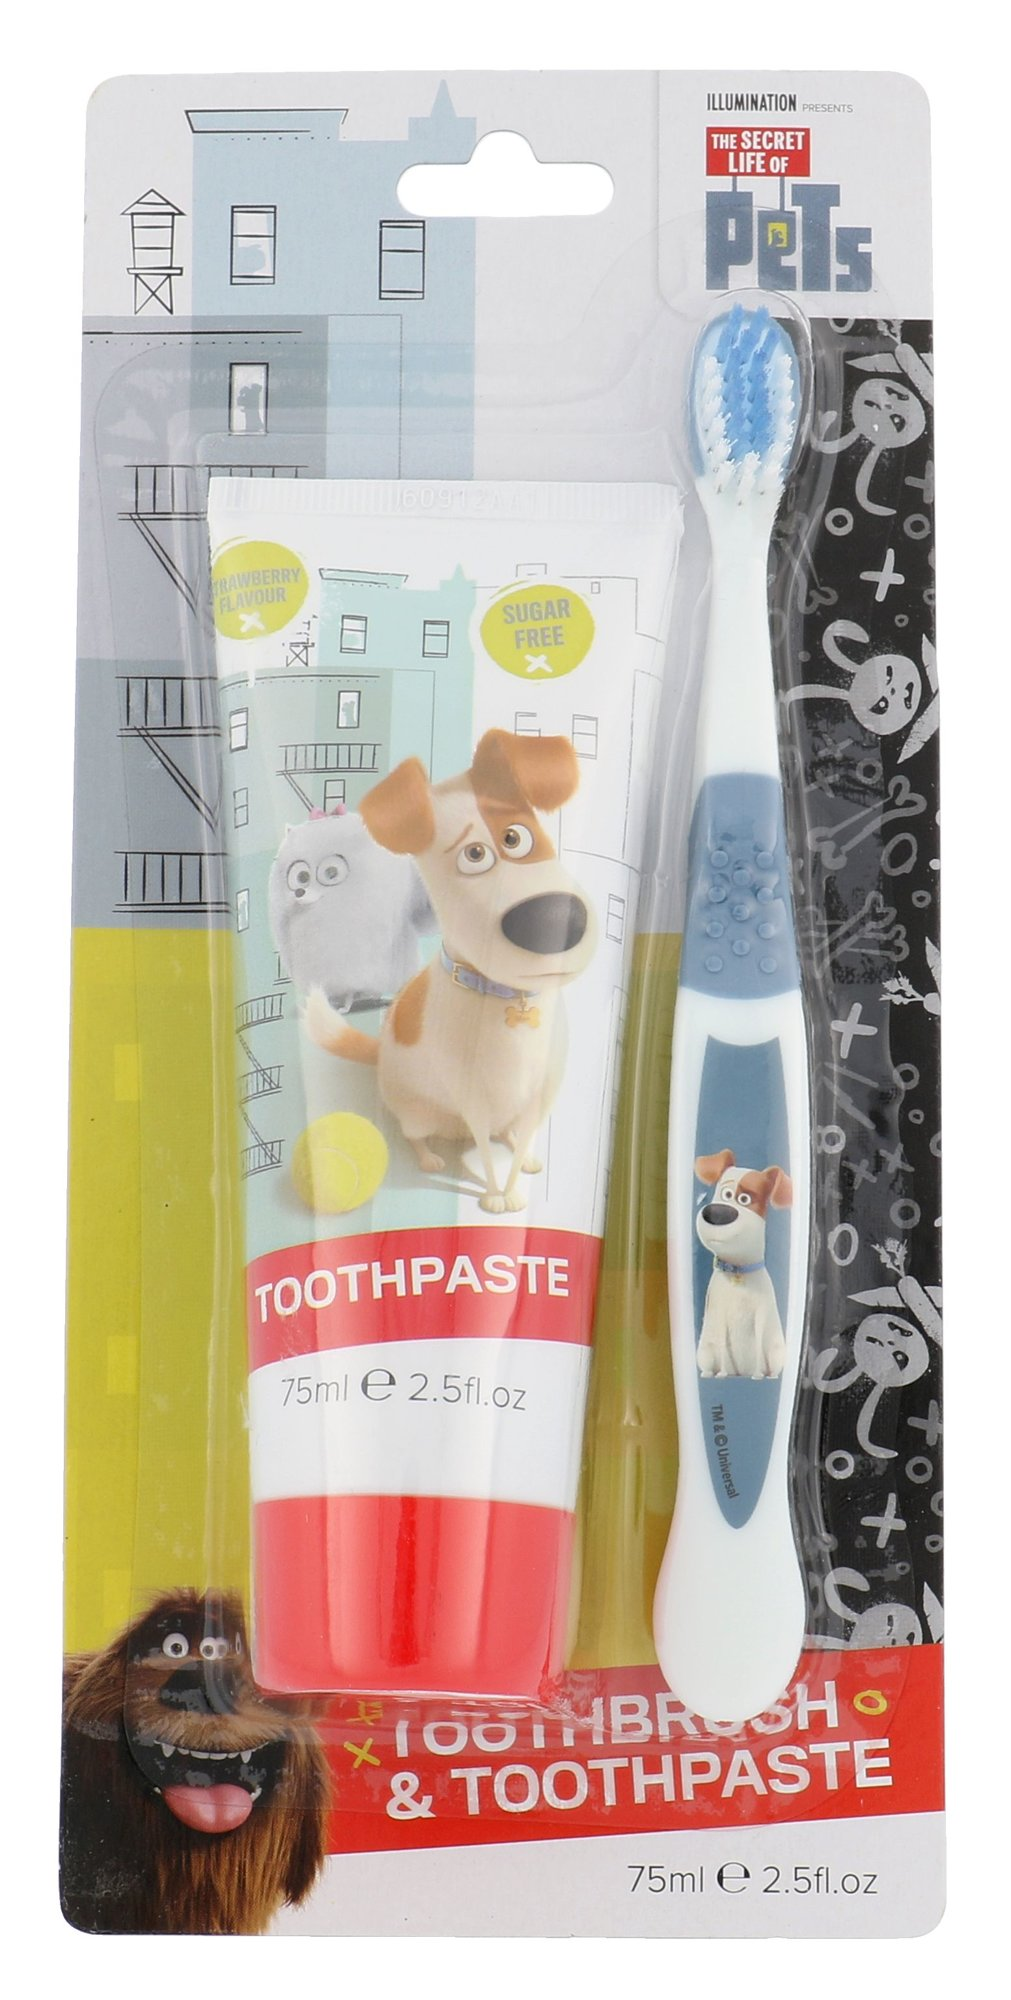 Universal The Secret Life Of Pets Cosmetic 75ml